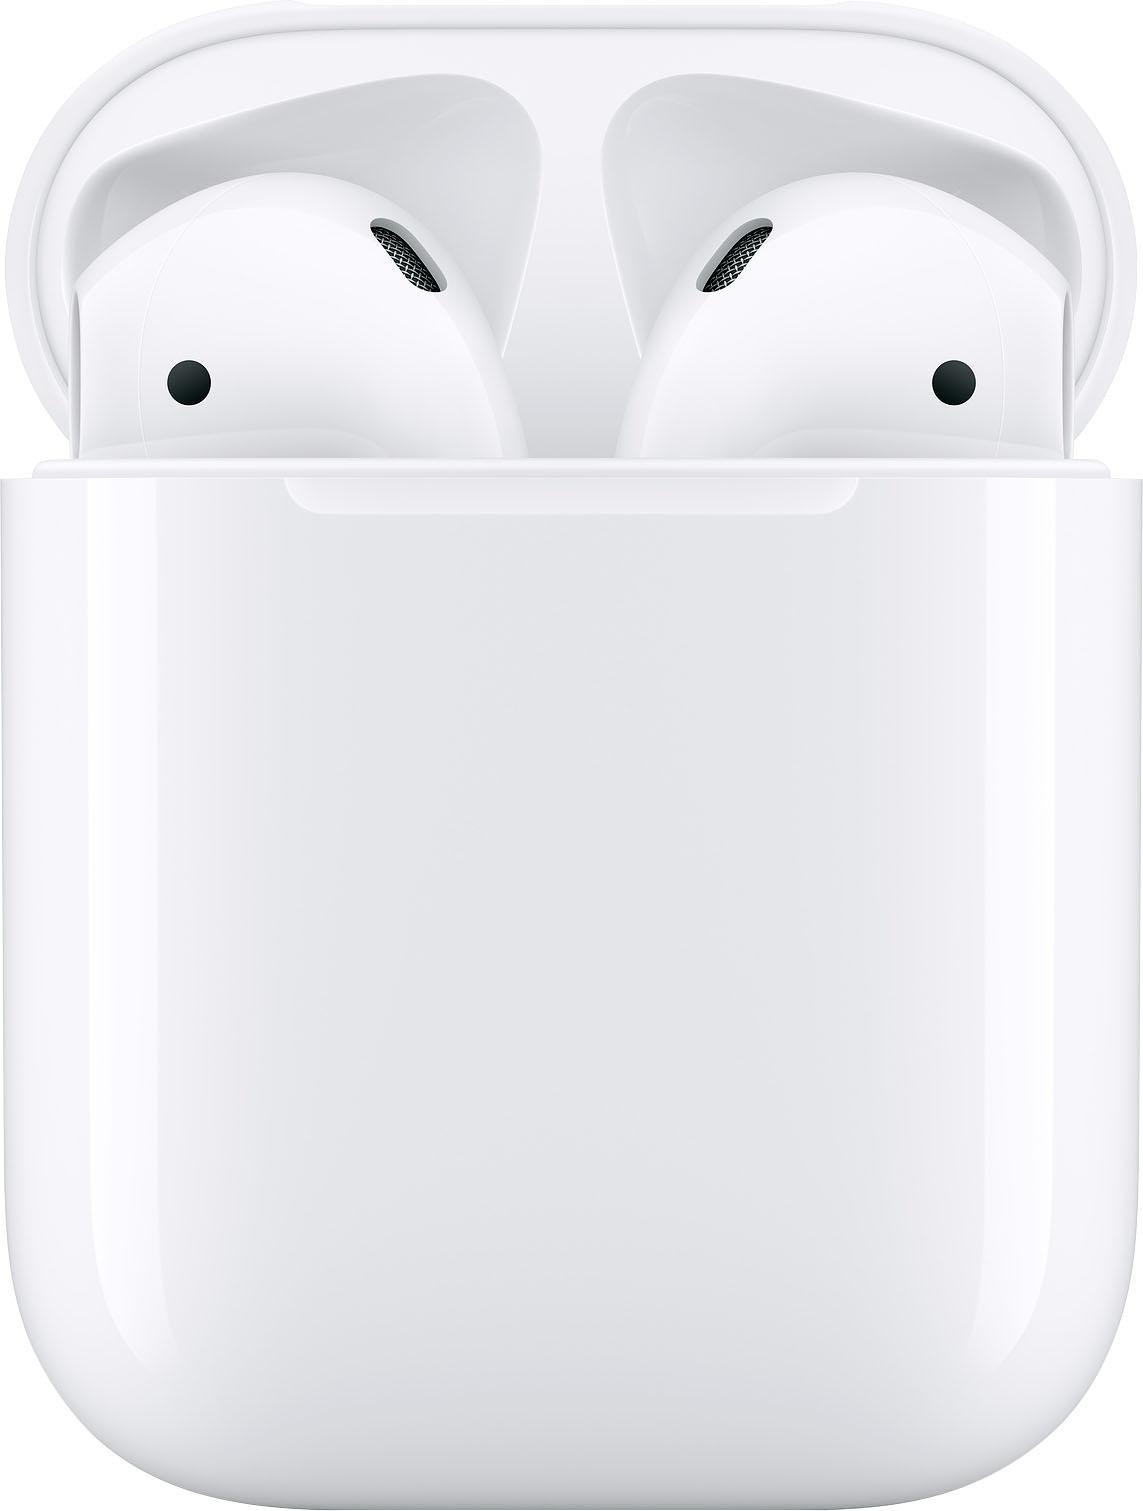 Apple »AirPods with Charging Case (2019)« in-ear-hoofdtelefoon (bluetooth, spraakbesturing) - gratis ruilen op otto.nl